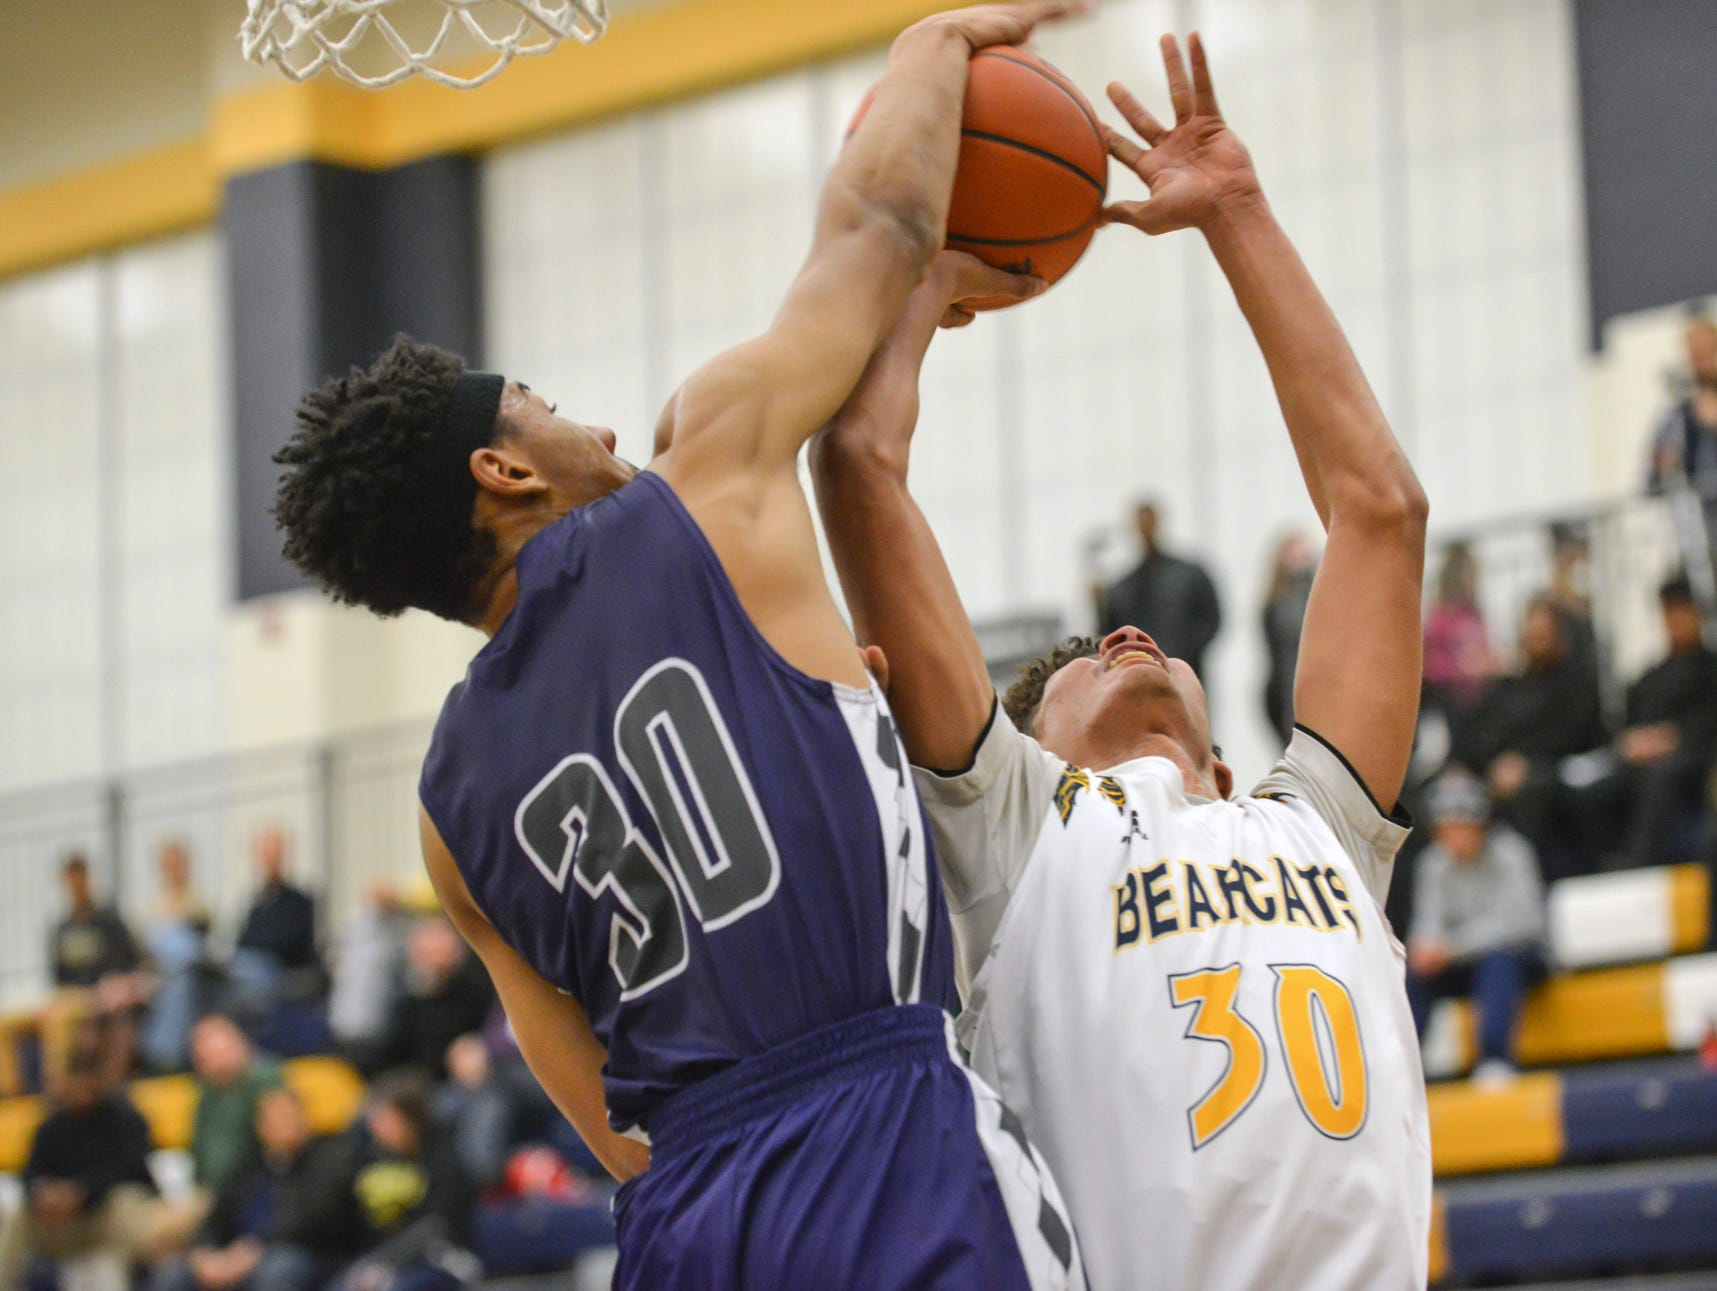 Lakeview's DaLeon Graham works on blocking a shot by Central's Wendell White.